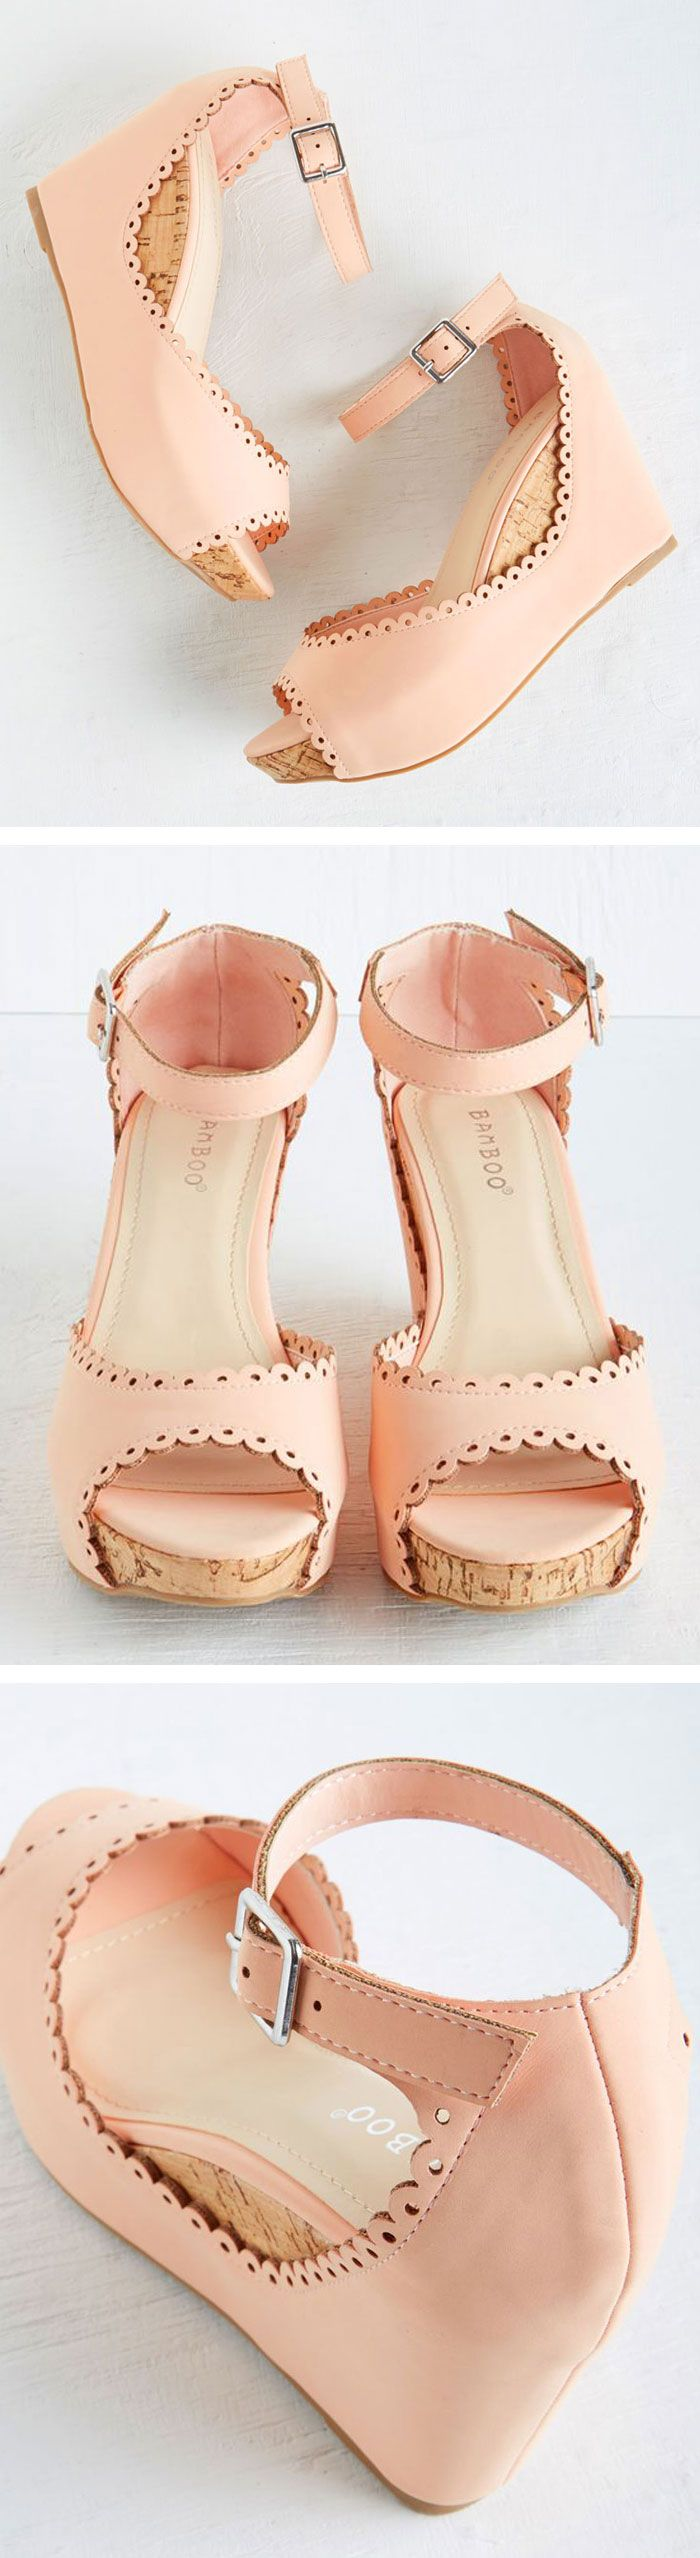 these so remind me of shoes I wore as a teenager but I can't remember what they were called. i'll get back to ya. jh